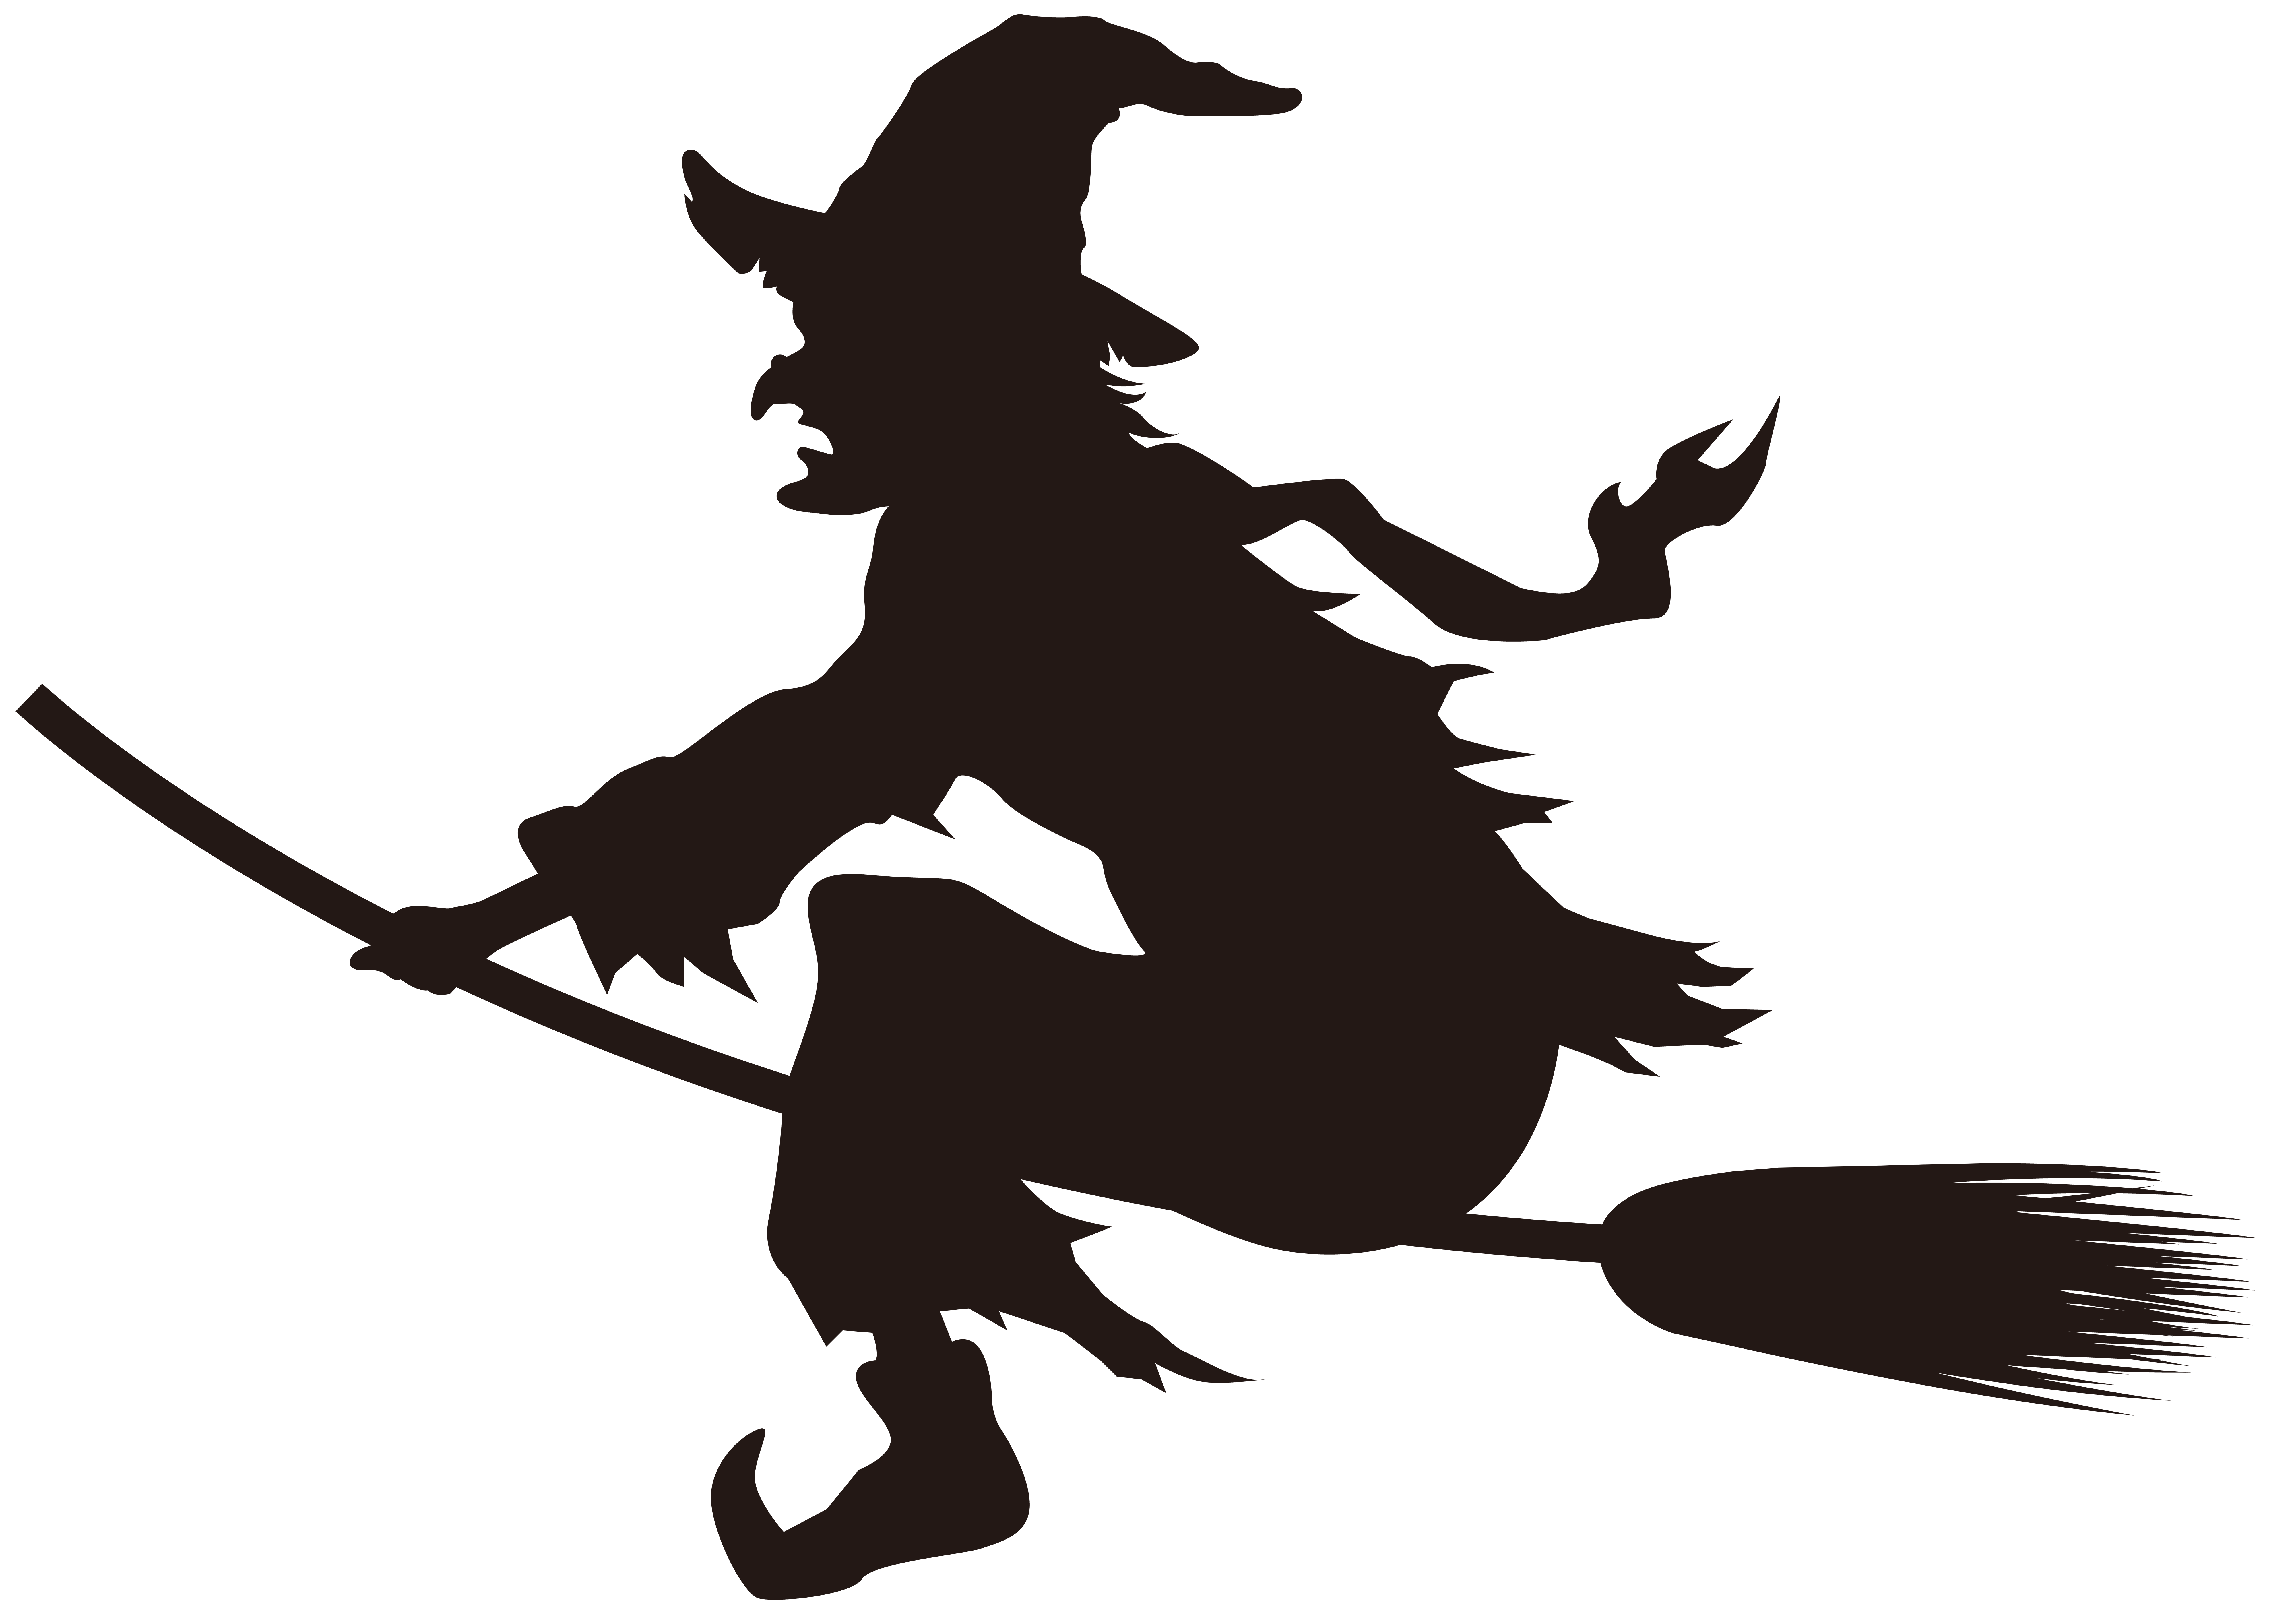 Halloween Witch on Broom Silhouette PNG Clip Art Image.